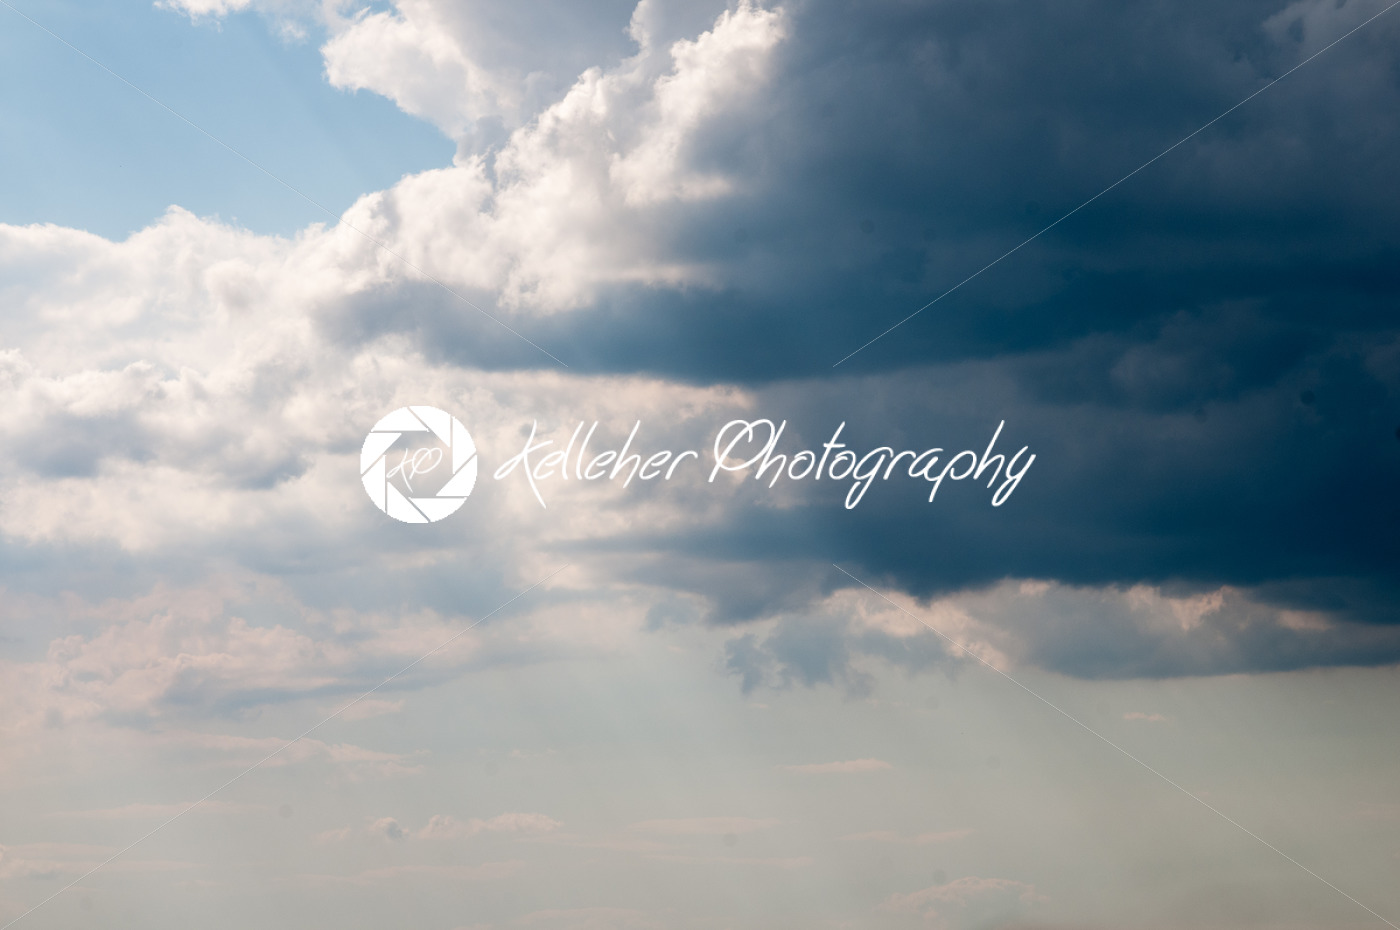 Dark storm clouds sky. Copy space below - Kelleher Photography Store